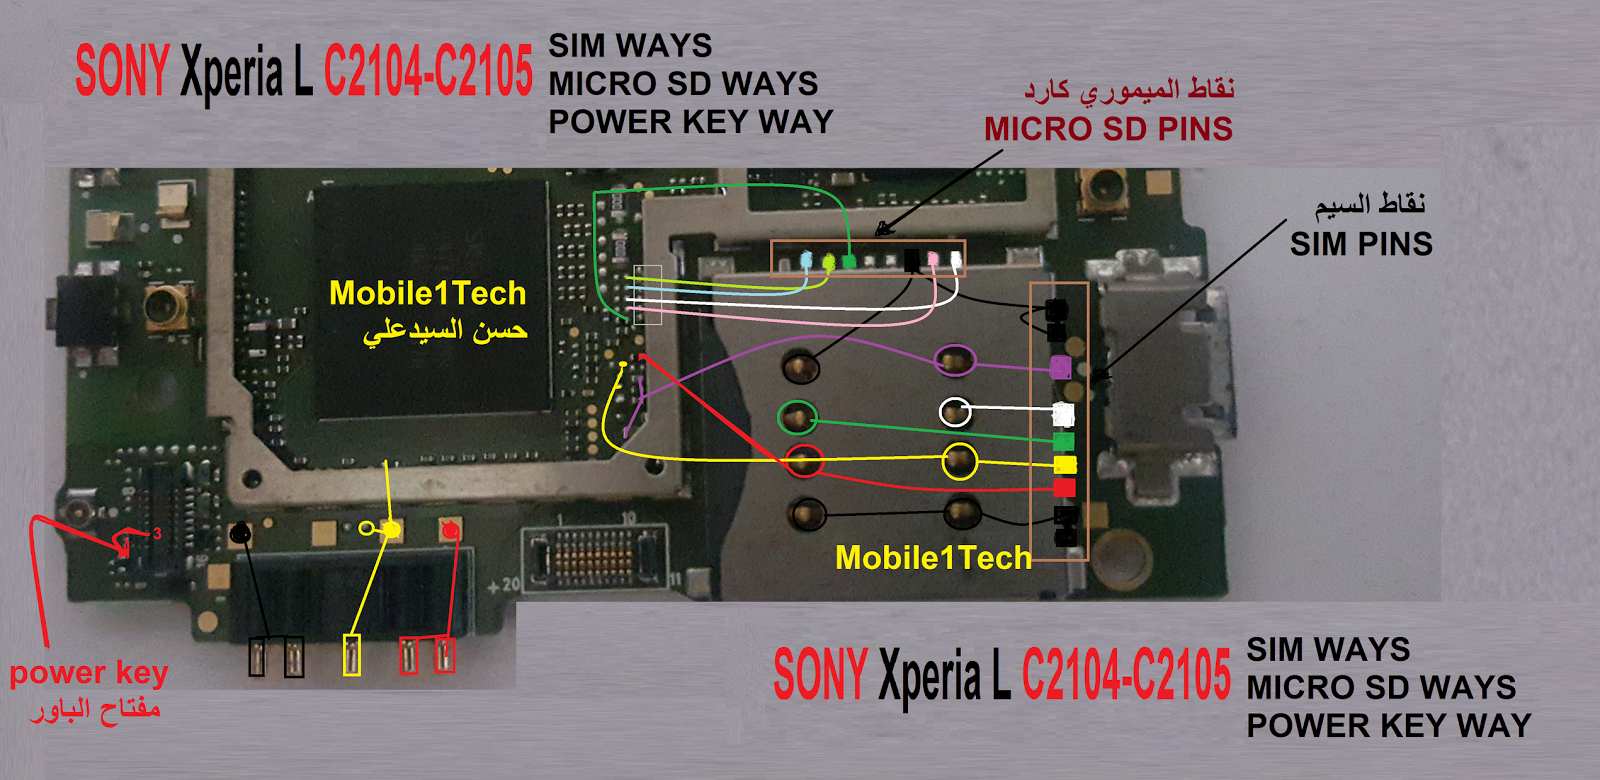 medium resolution of sony xperia l circuit diagram wiring diagram paper sony xperia l c2104 c2105 full schematic mobile1tech